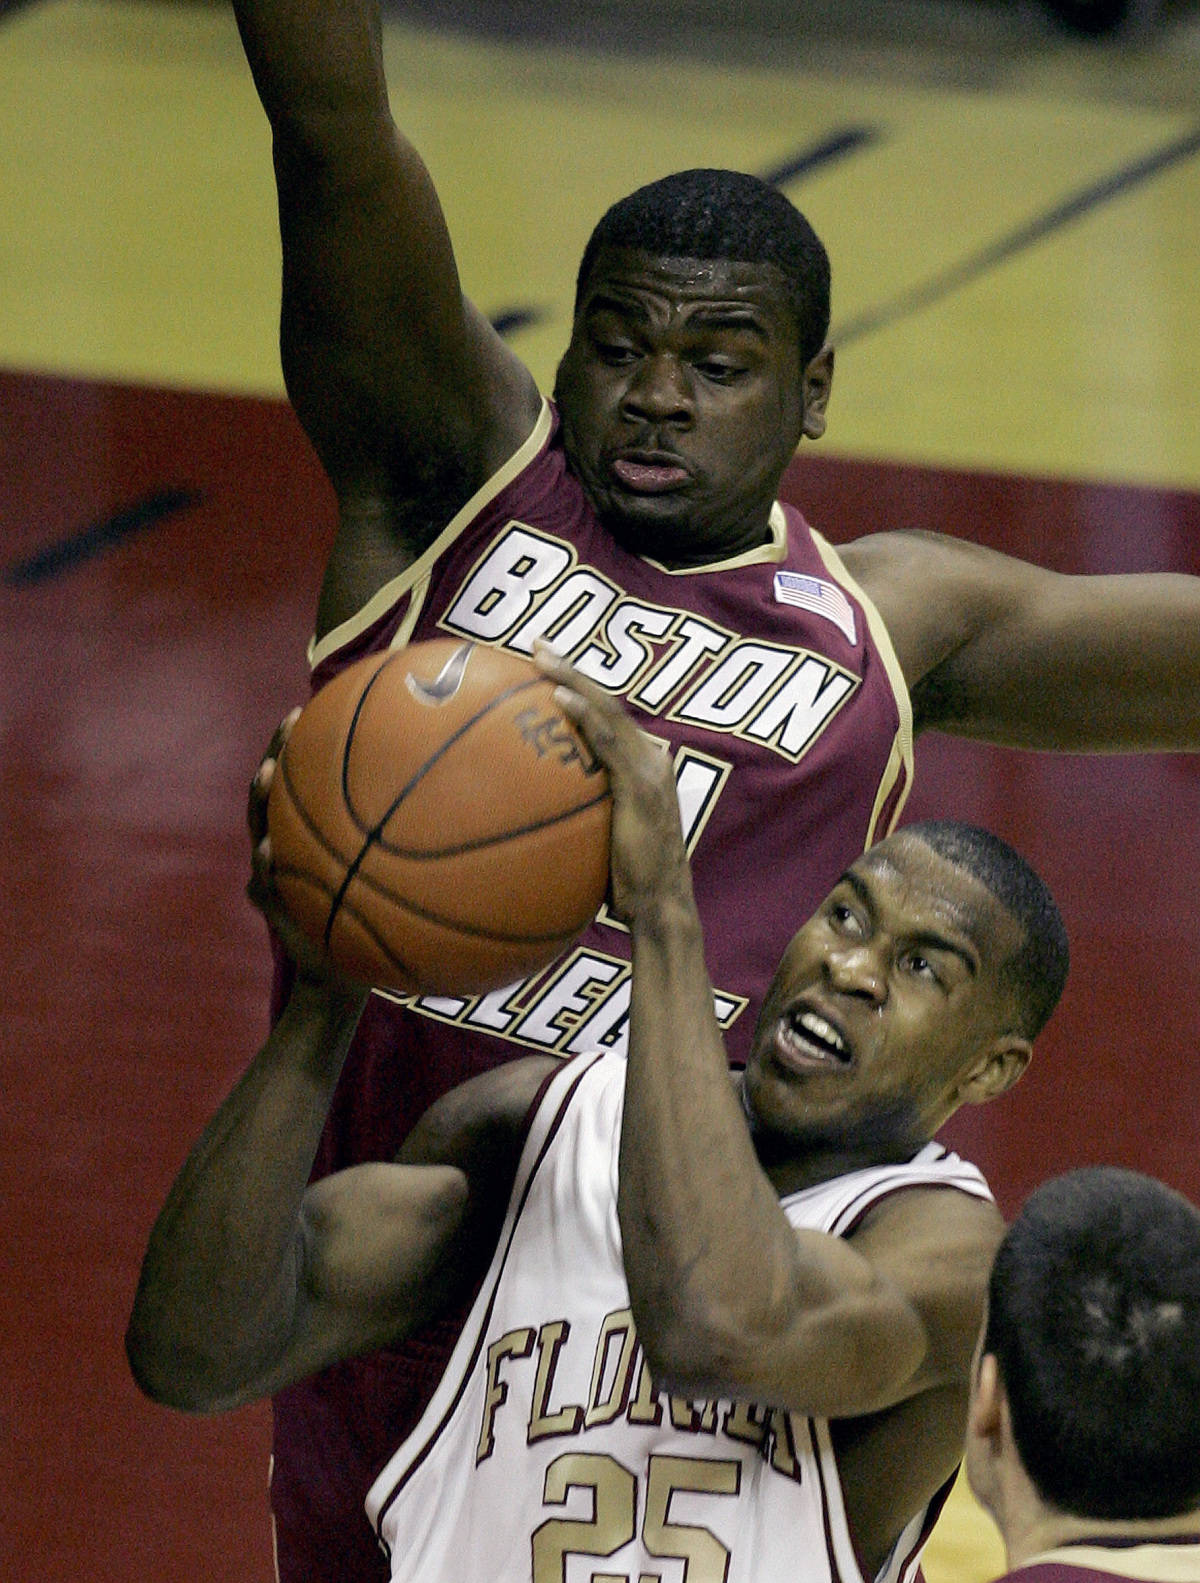 Florida State's Jason Rich, bottom, drives to the basket for two first-half points as Boston College's Shamari Spears, top, attempts to defend during a college basketball game, Sunday, Feb. 11, 2007, in Tallahassee, Fla.(AP Photo/Phil Coale)